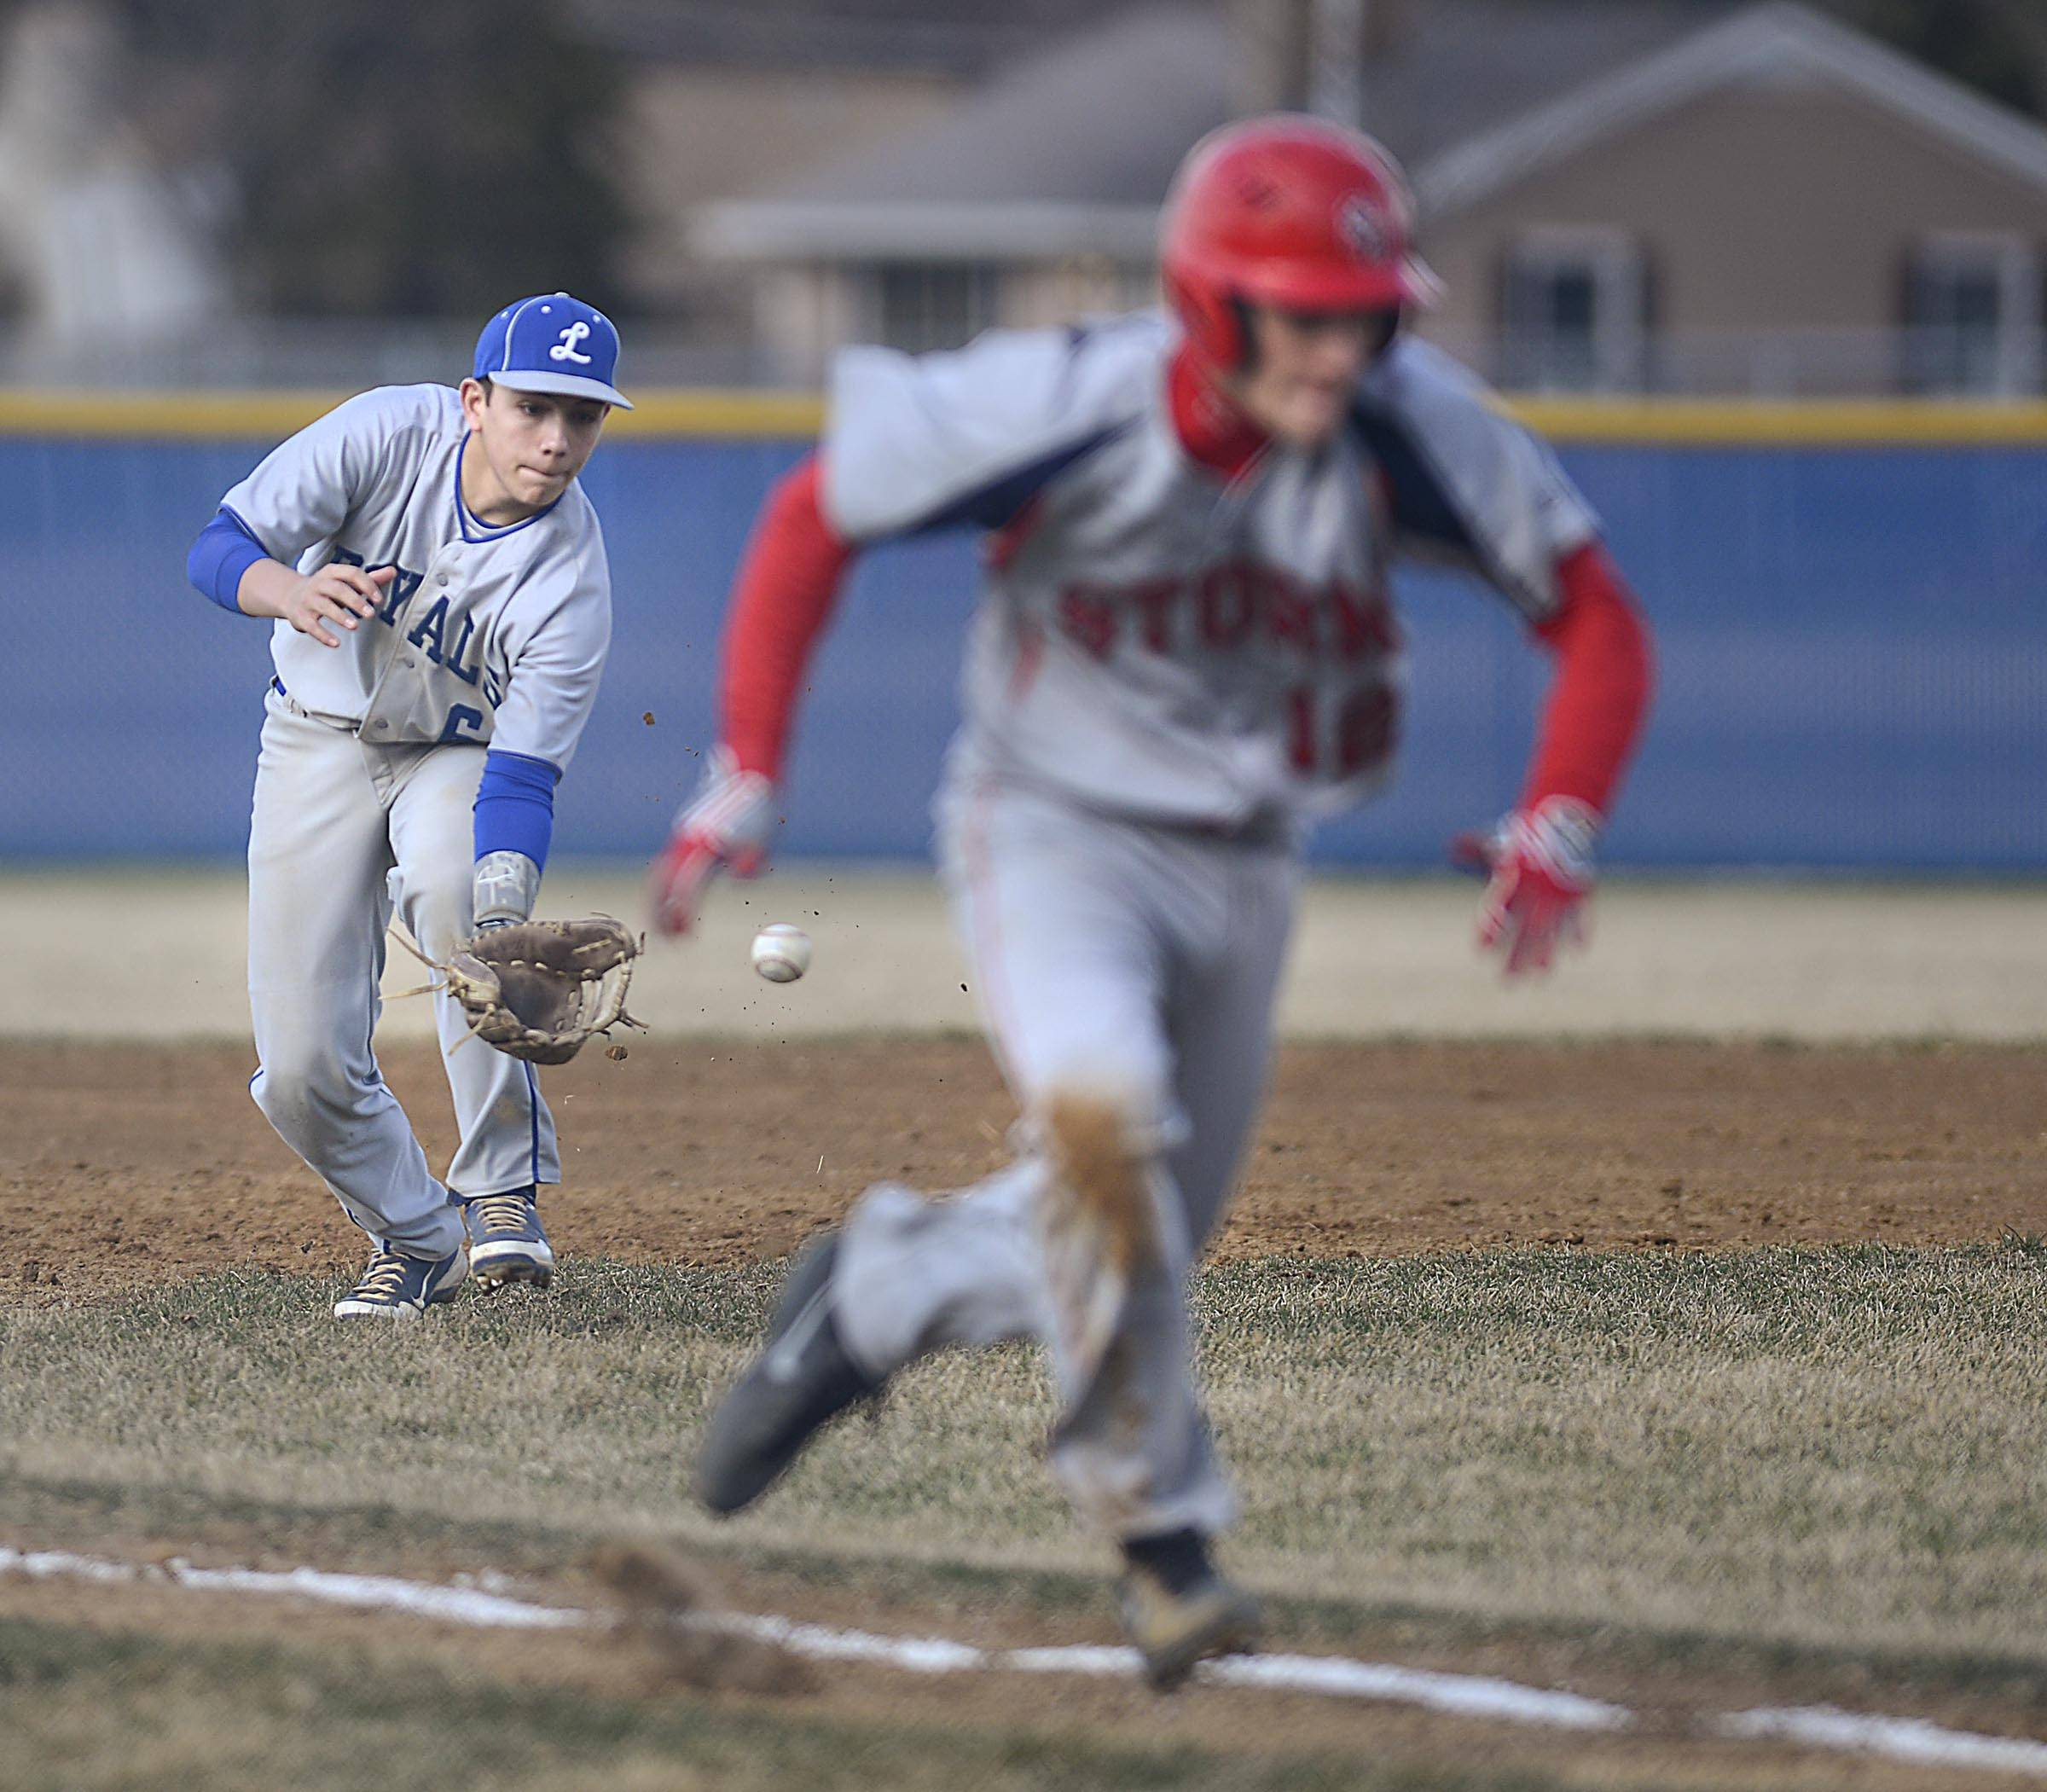 Larkin third baseman Dan Lenz fields a ground ball as  South Elgin's Kyle Hays scores from third on the hit by teammate Zach Filippo in the first inning Tuesday in Elgin.